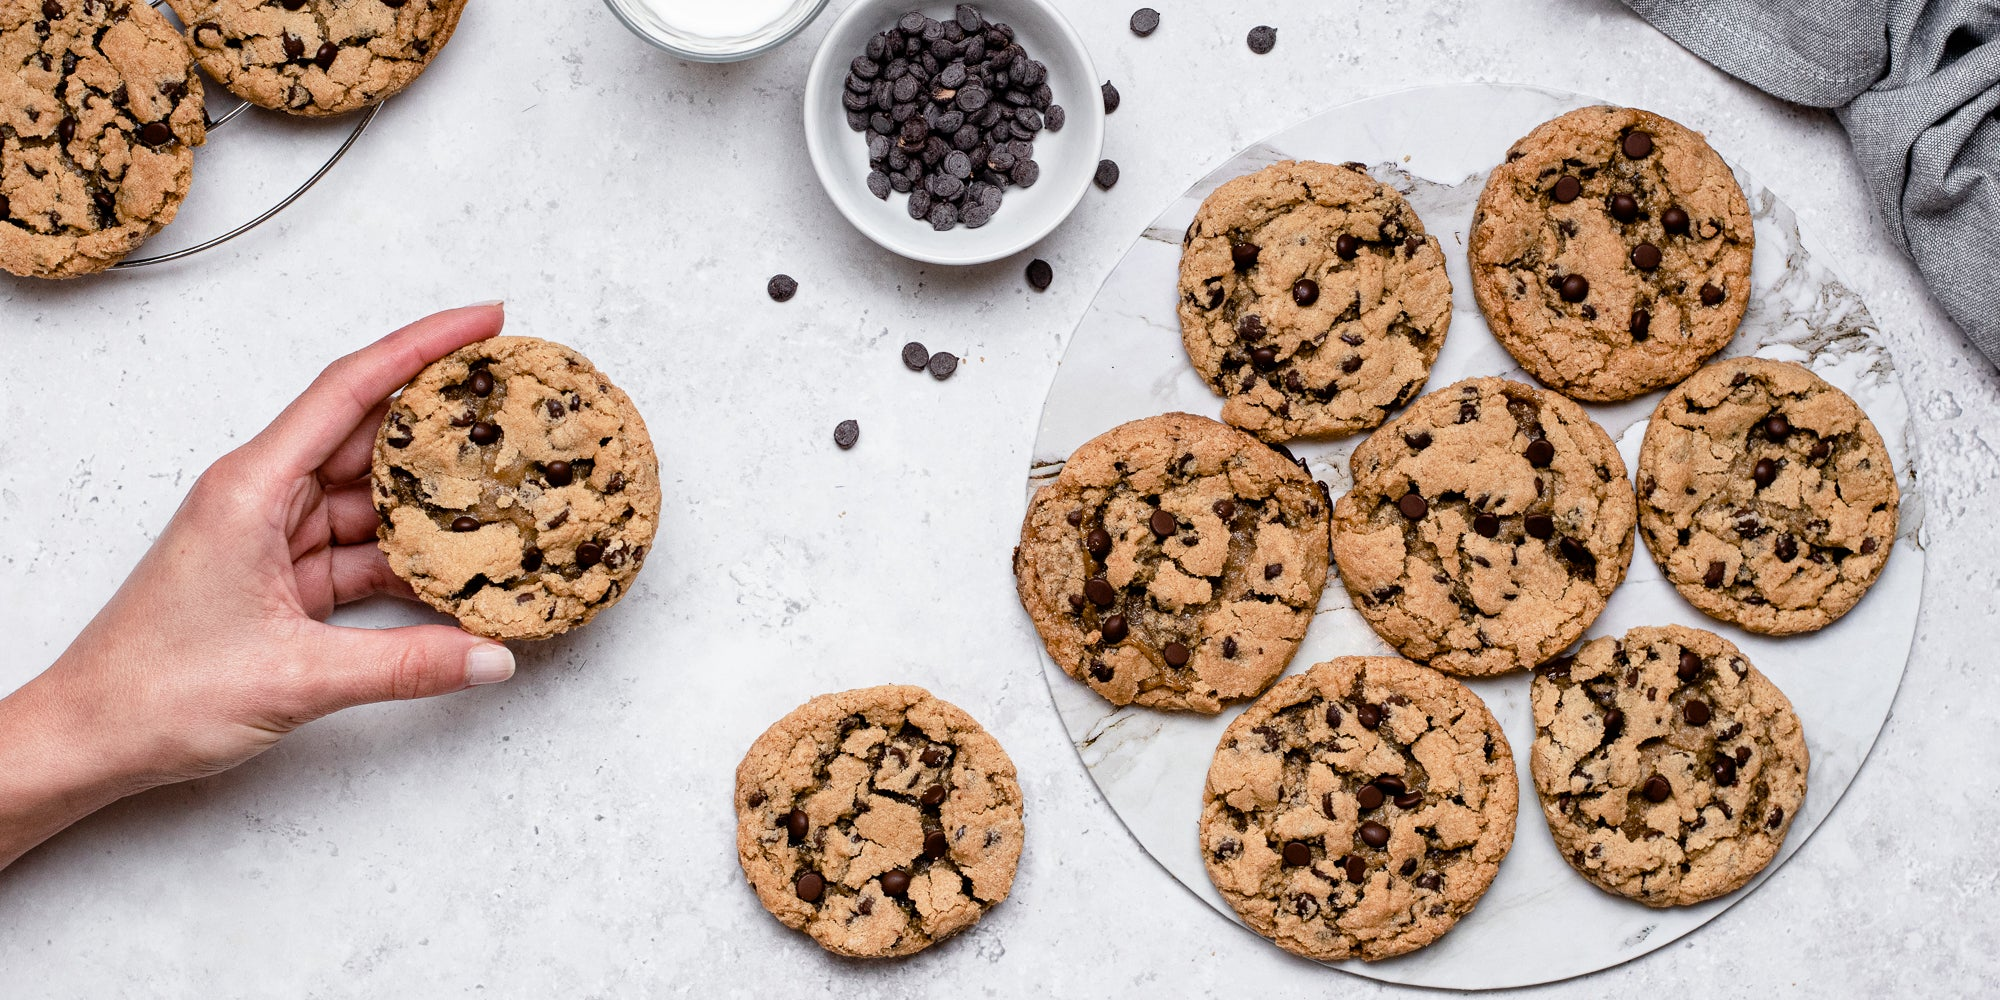 Top down view of a hand holding a vegan and gluten free chocolate chip cookie next to a plate of cookies